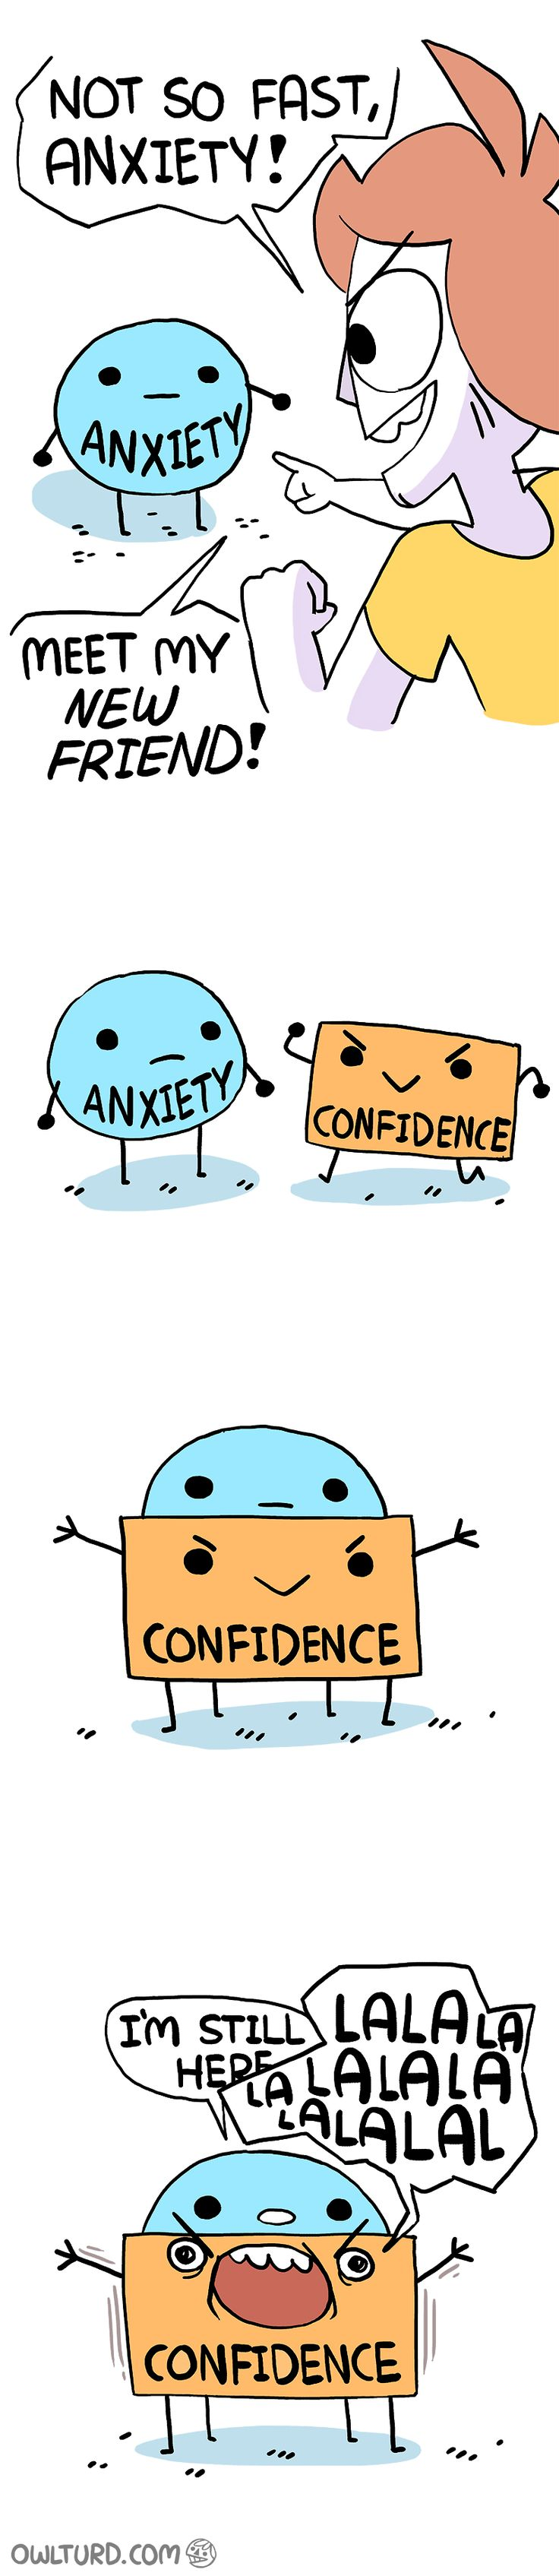 [Image] Tricking anxiety (Comic by owlturd.com)